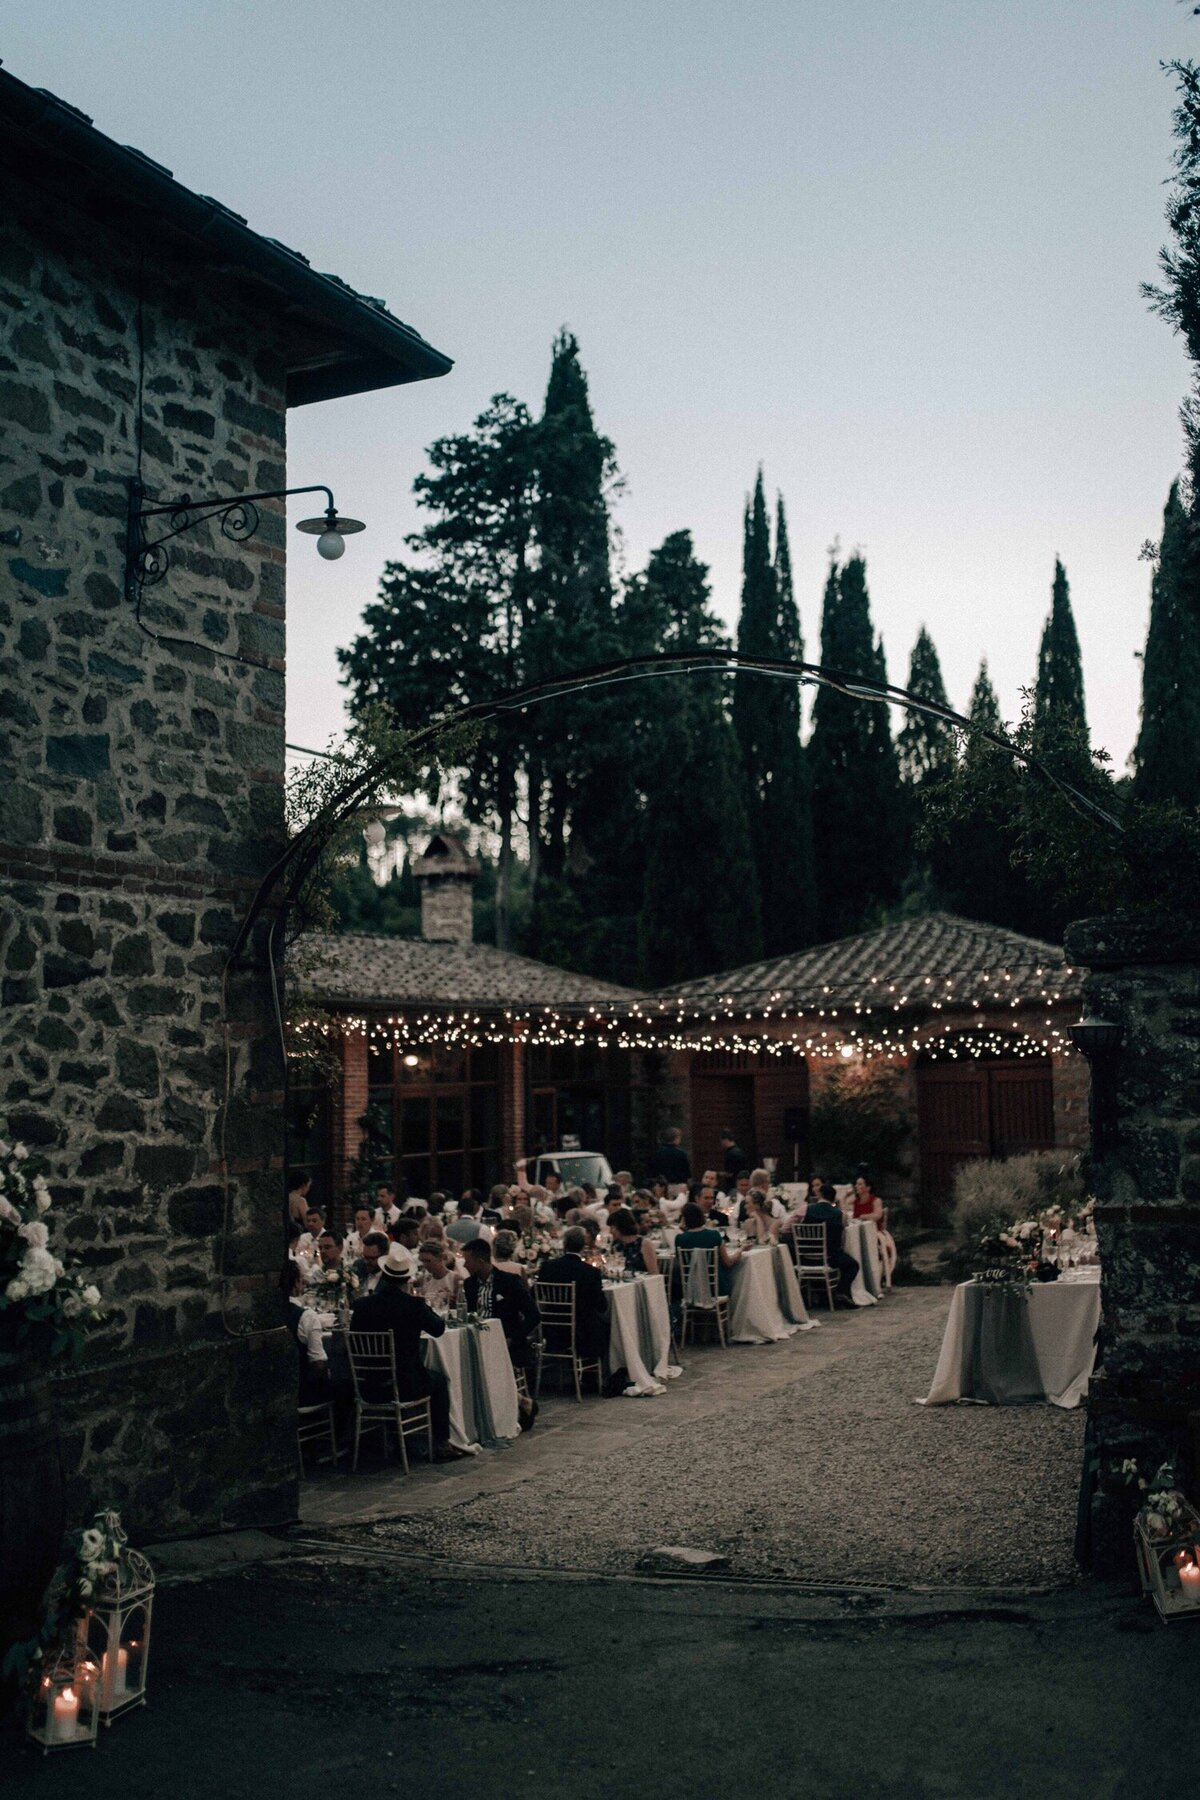 150_Tuscany_Luxury_Wedding_Photographer (167 von 215)_So thankful to be a luxury destination wedding photographer in Tuscany! Claire and James invited their beloved family & friends from London to their luxury wedding in Tuscany.